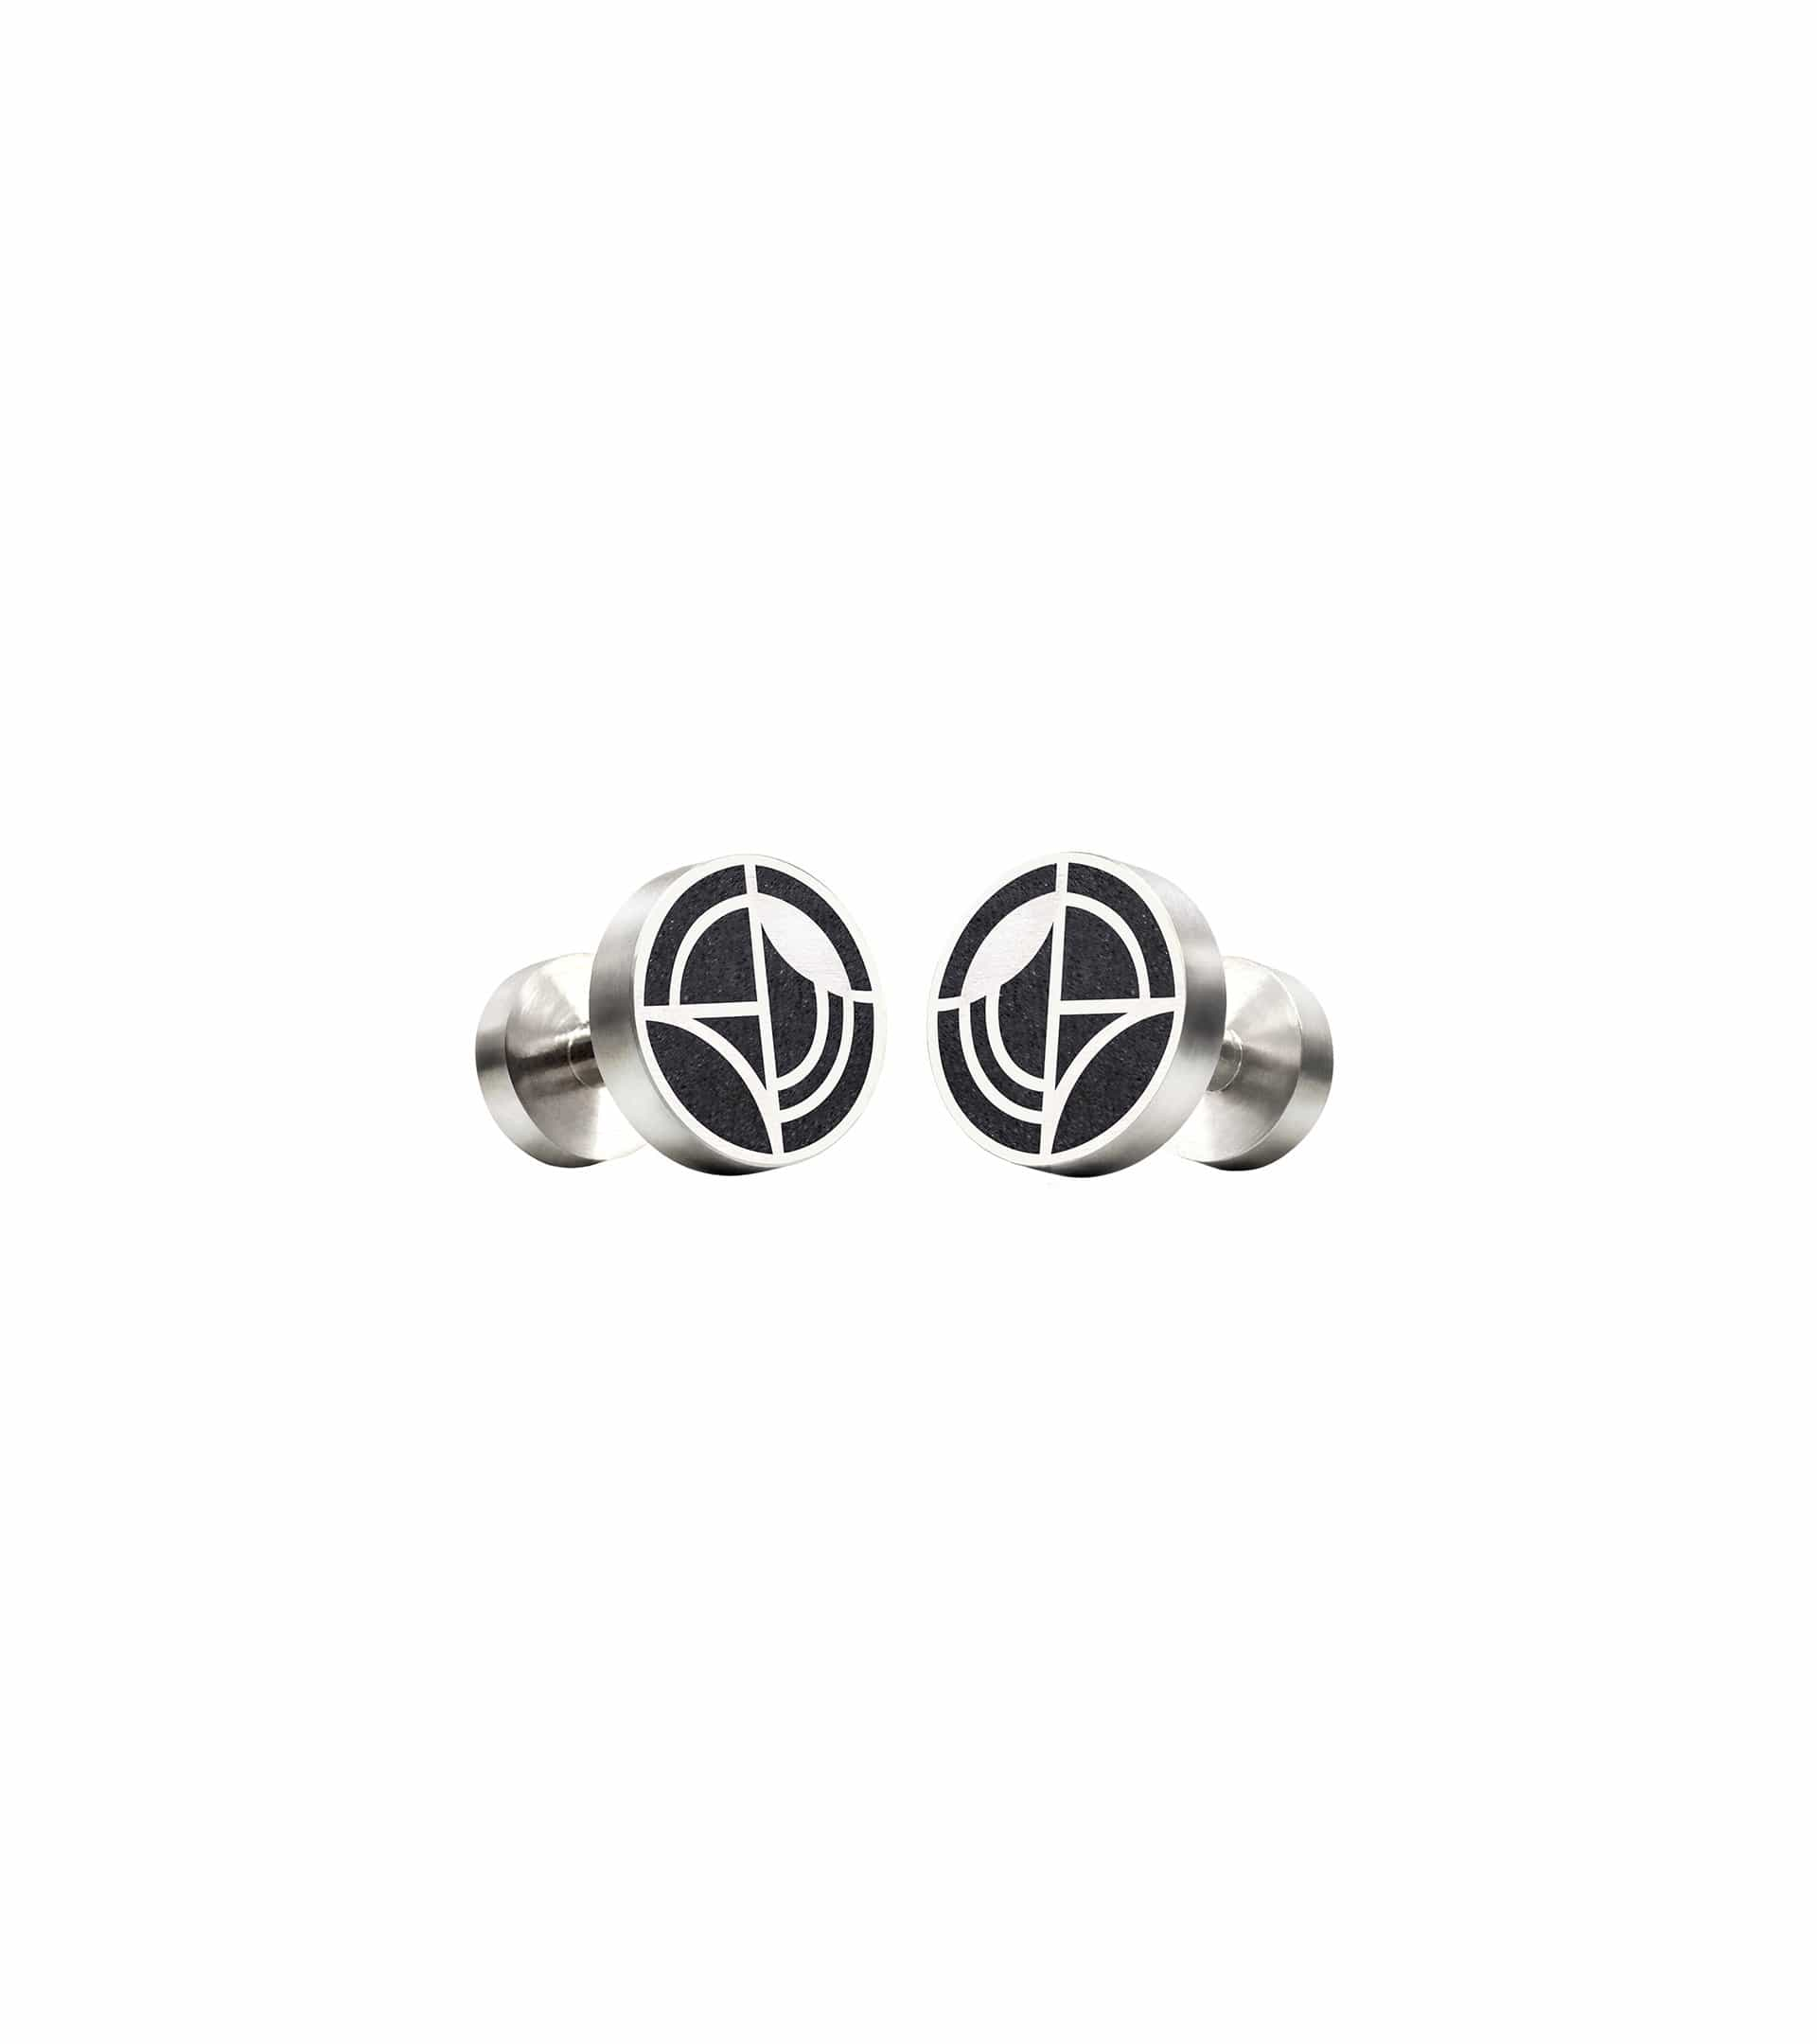 Konzuk Men K - Black Saguaro Concrete Cufflinks 1